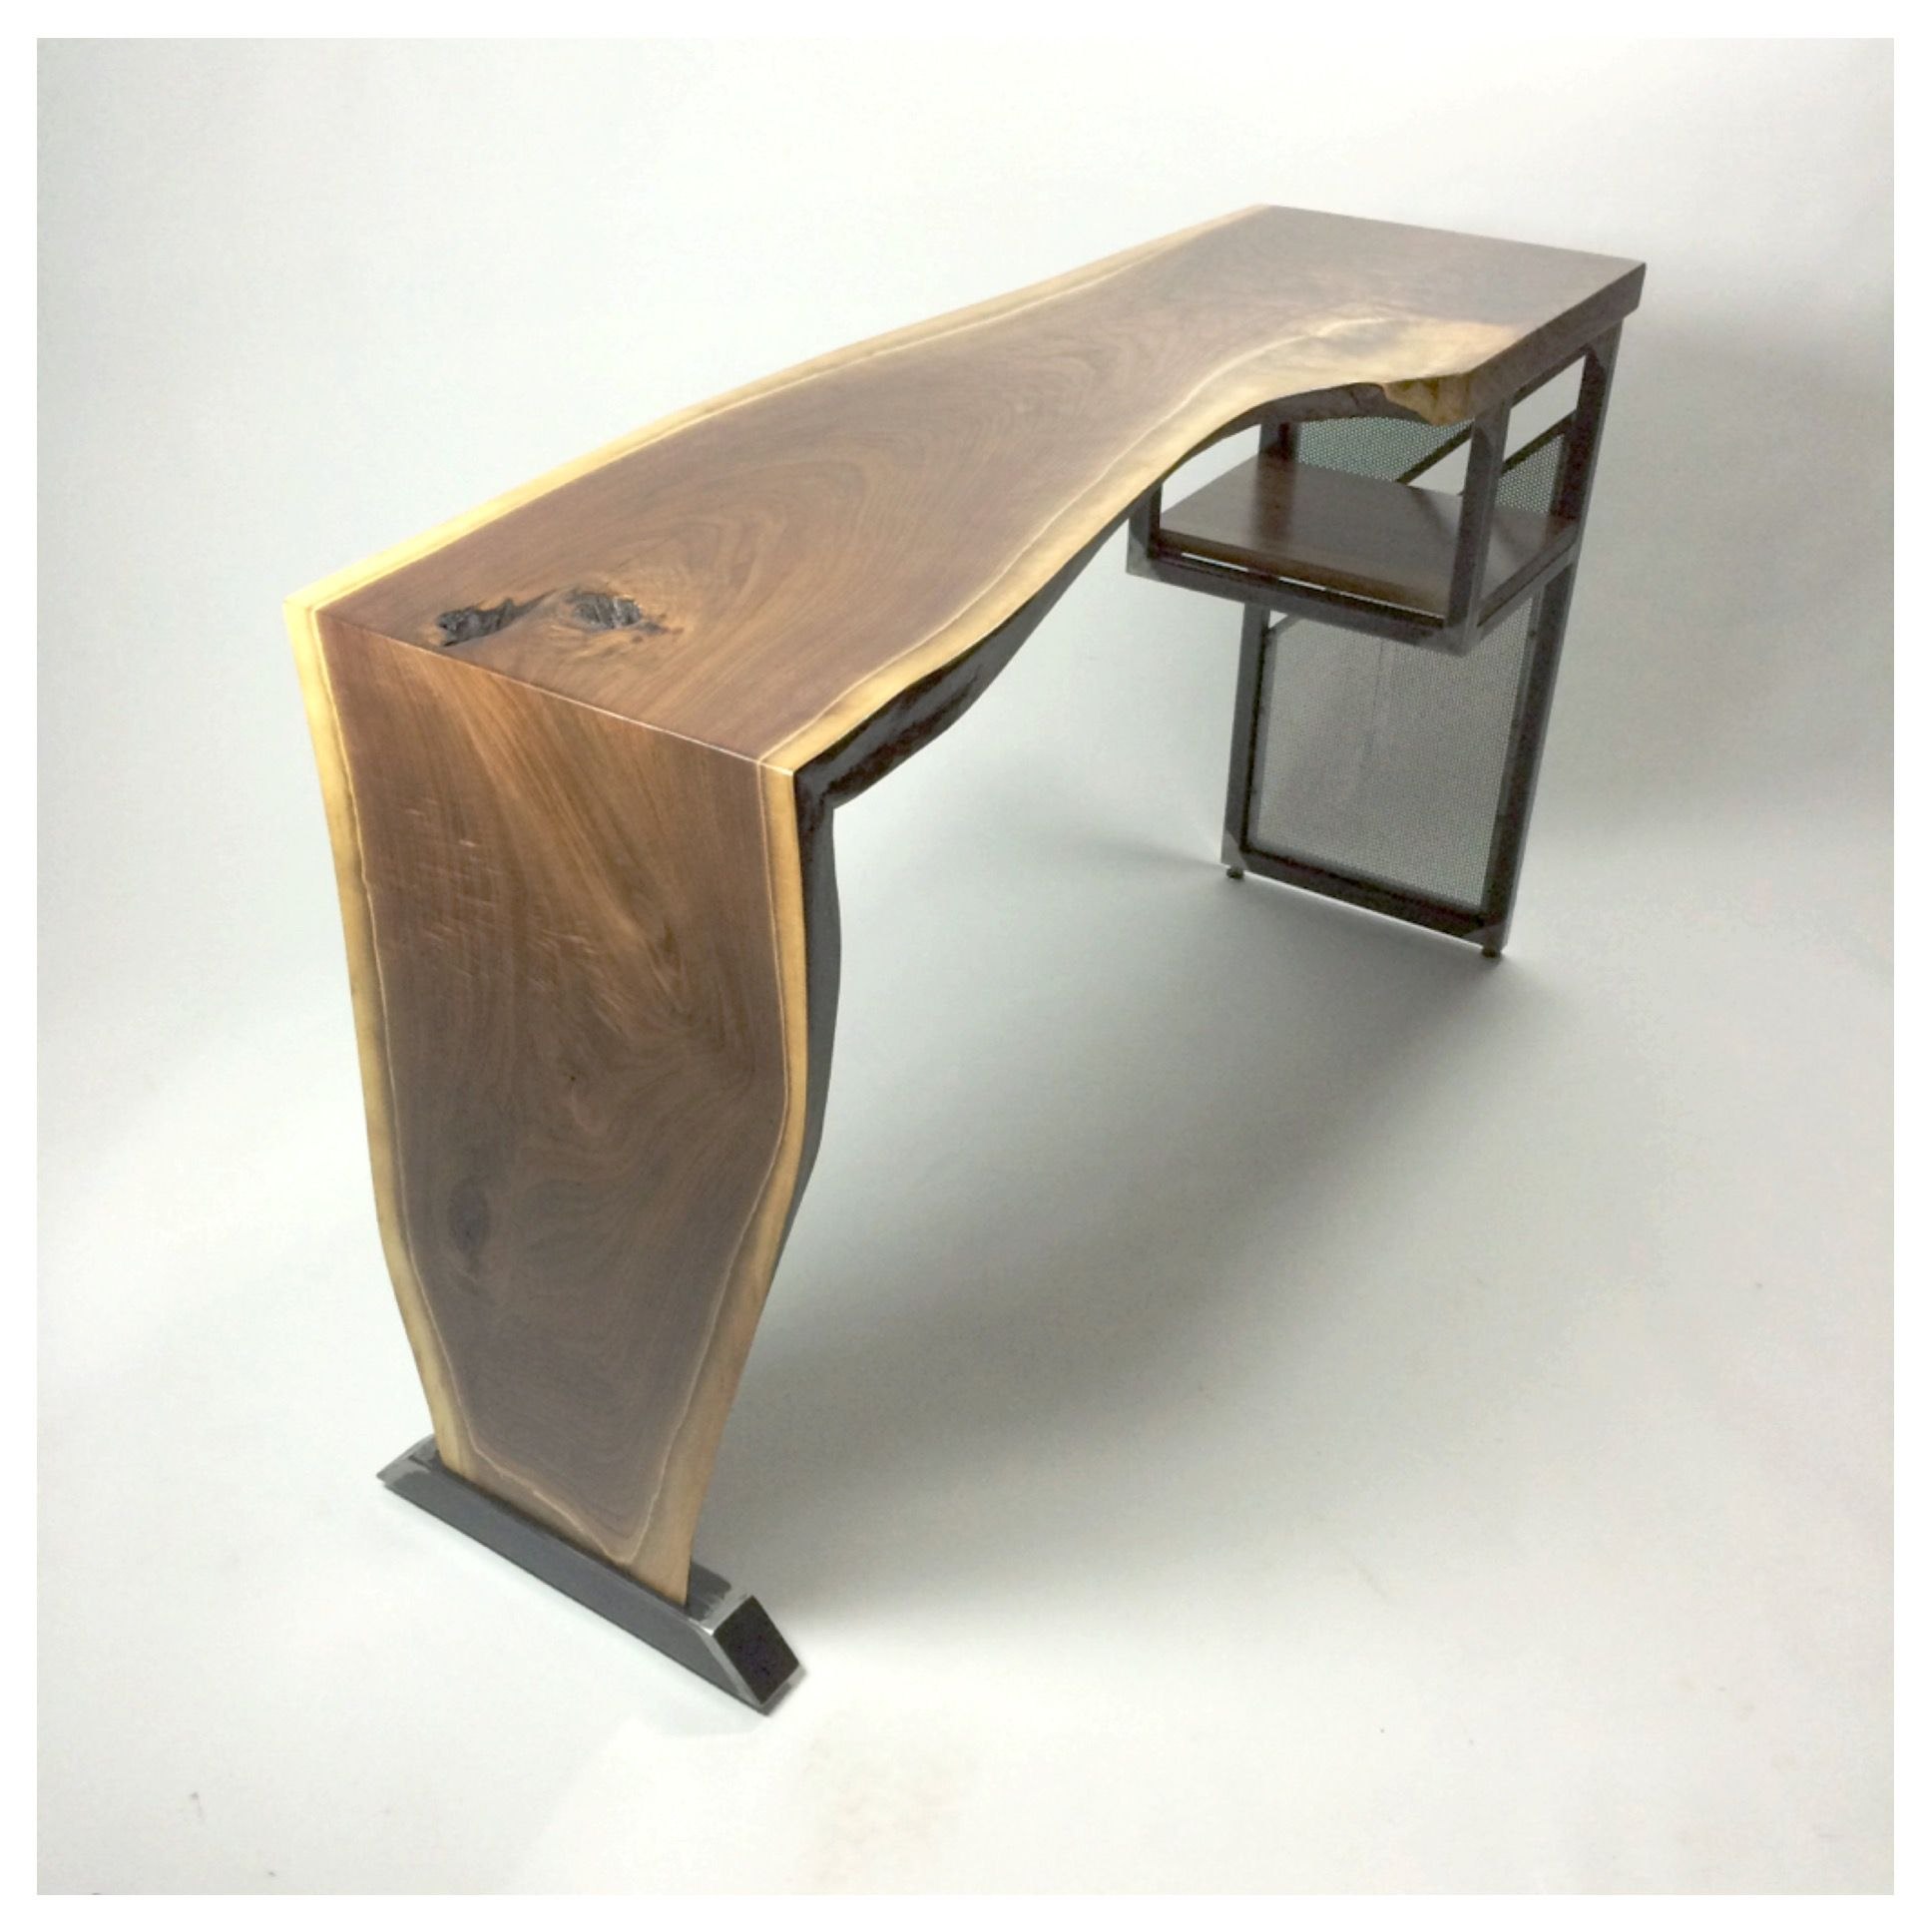 Handmade Live Edge Waterfall Desk Modern Steel Wood By Cauv Design Llc Custommade Com